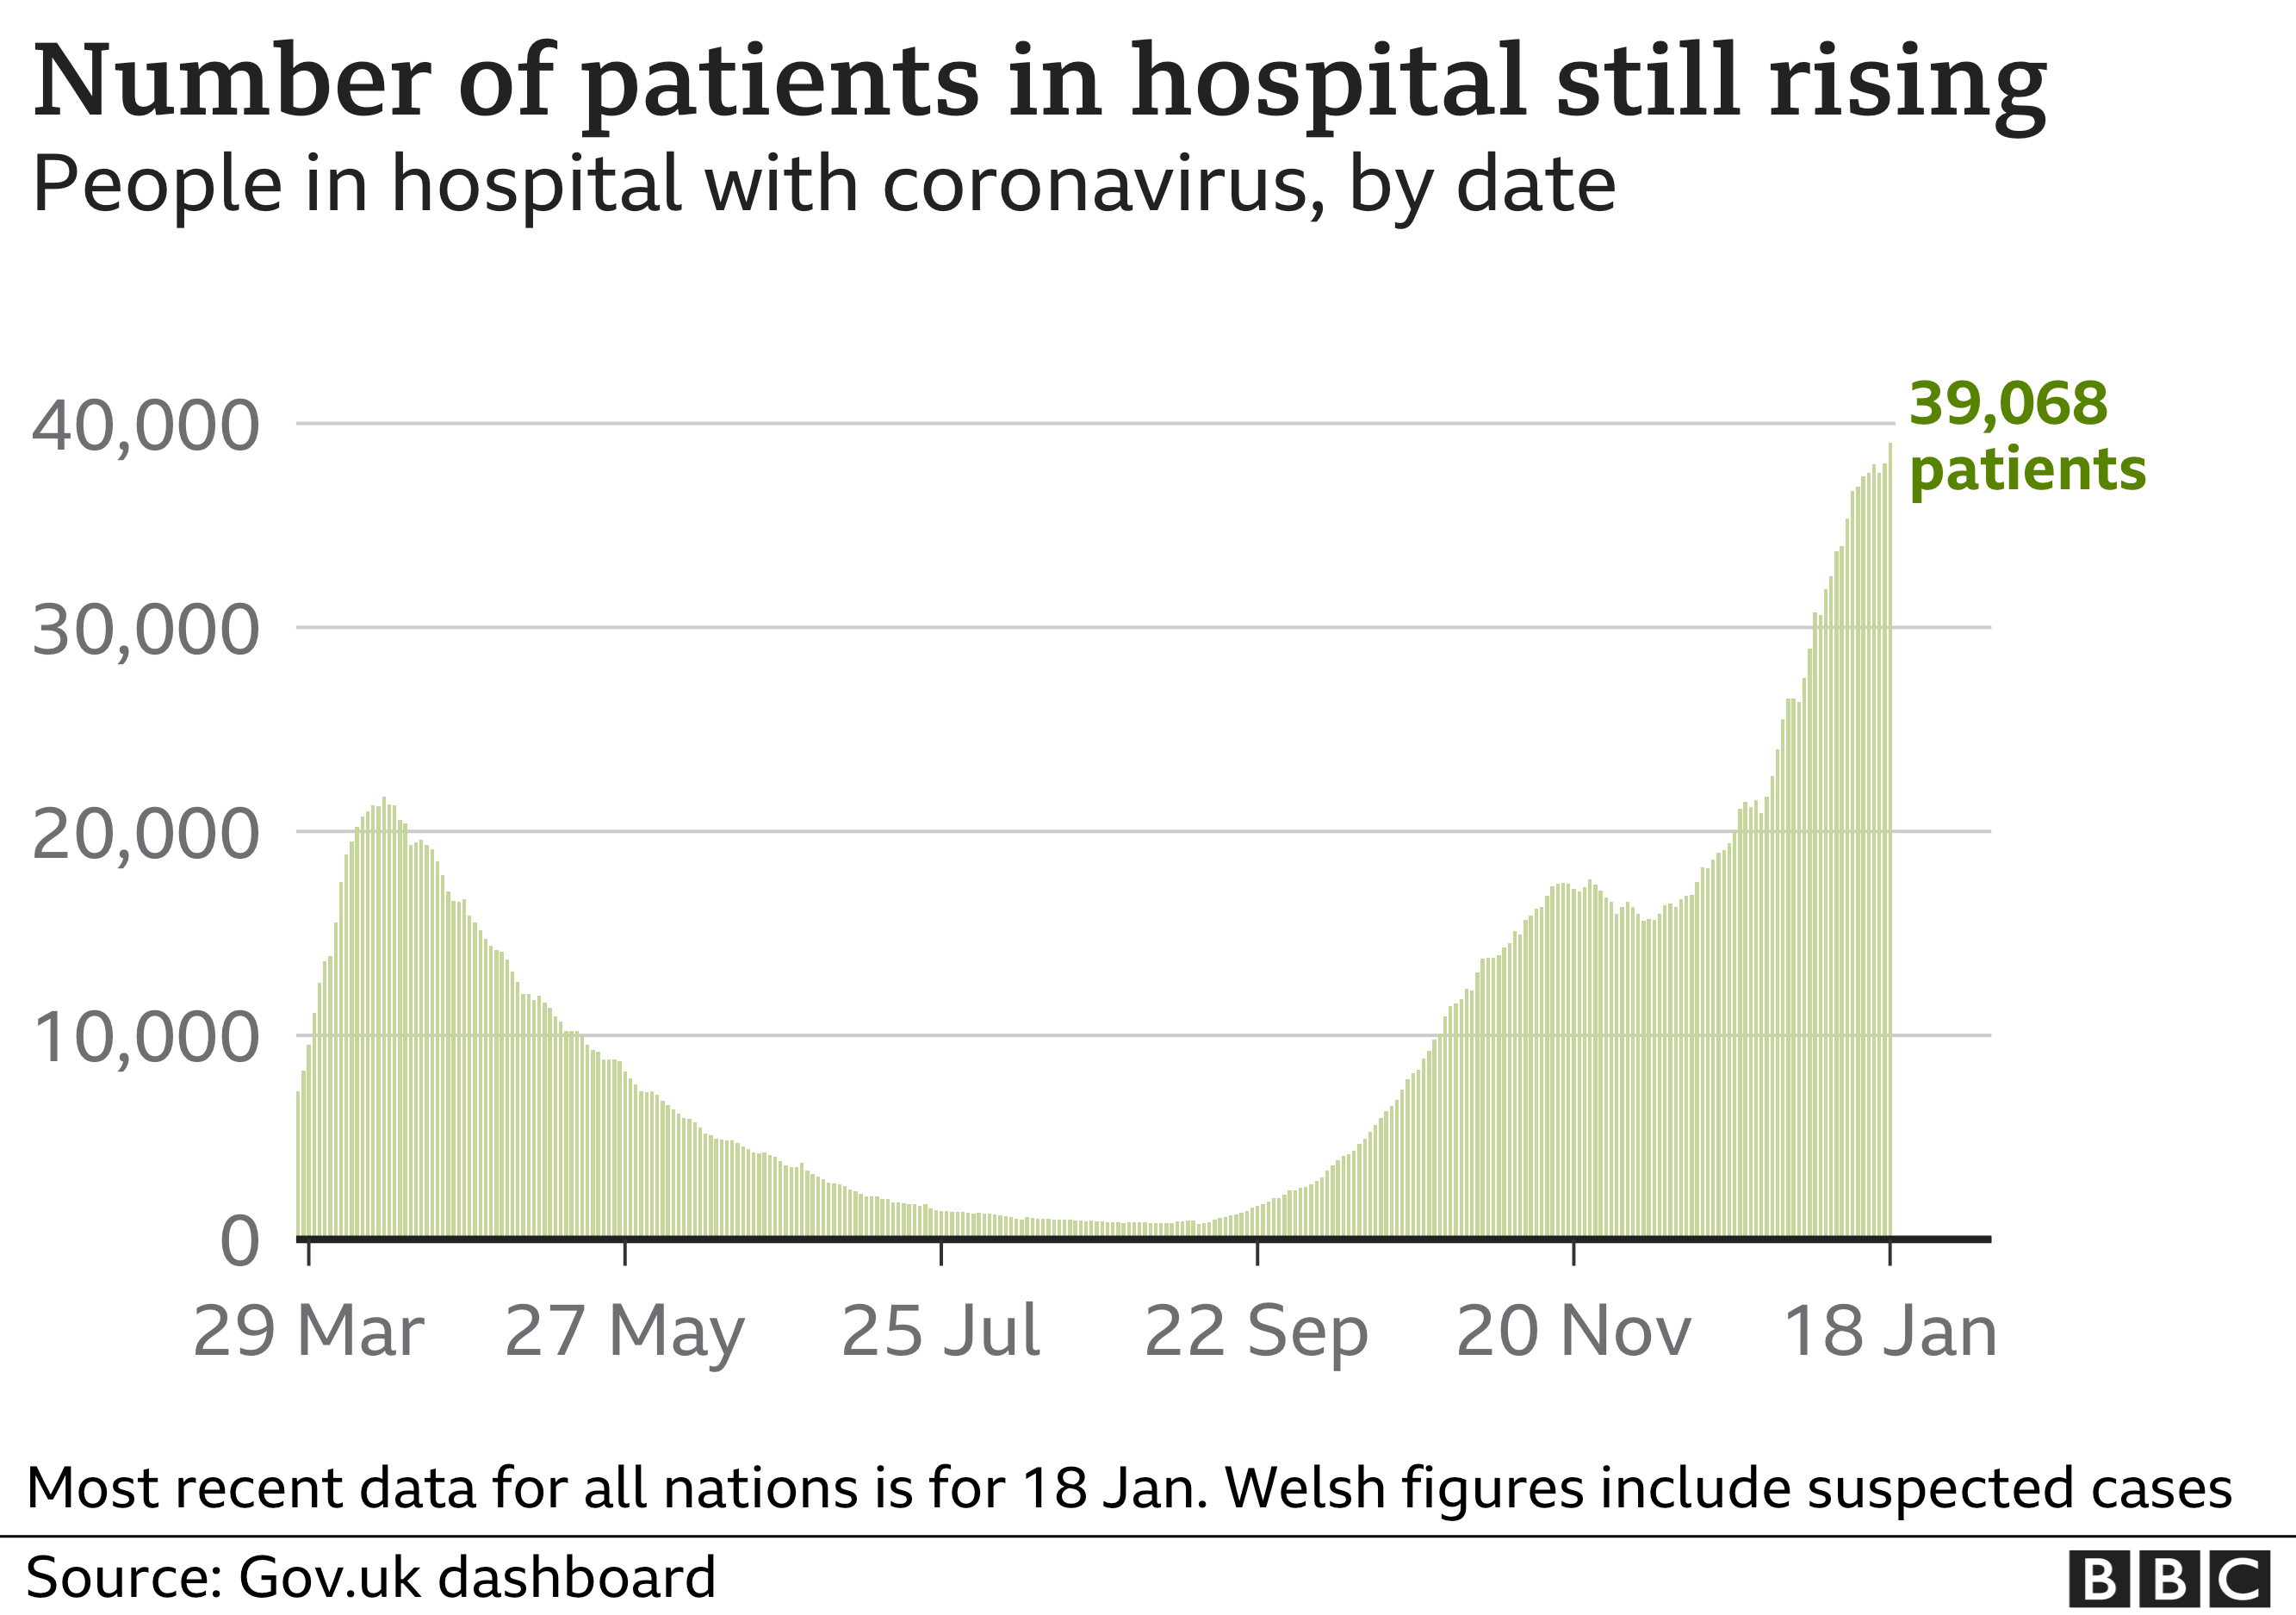 Chart shows numbers of patients in hospital still increasing